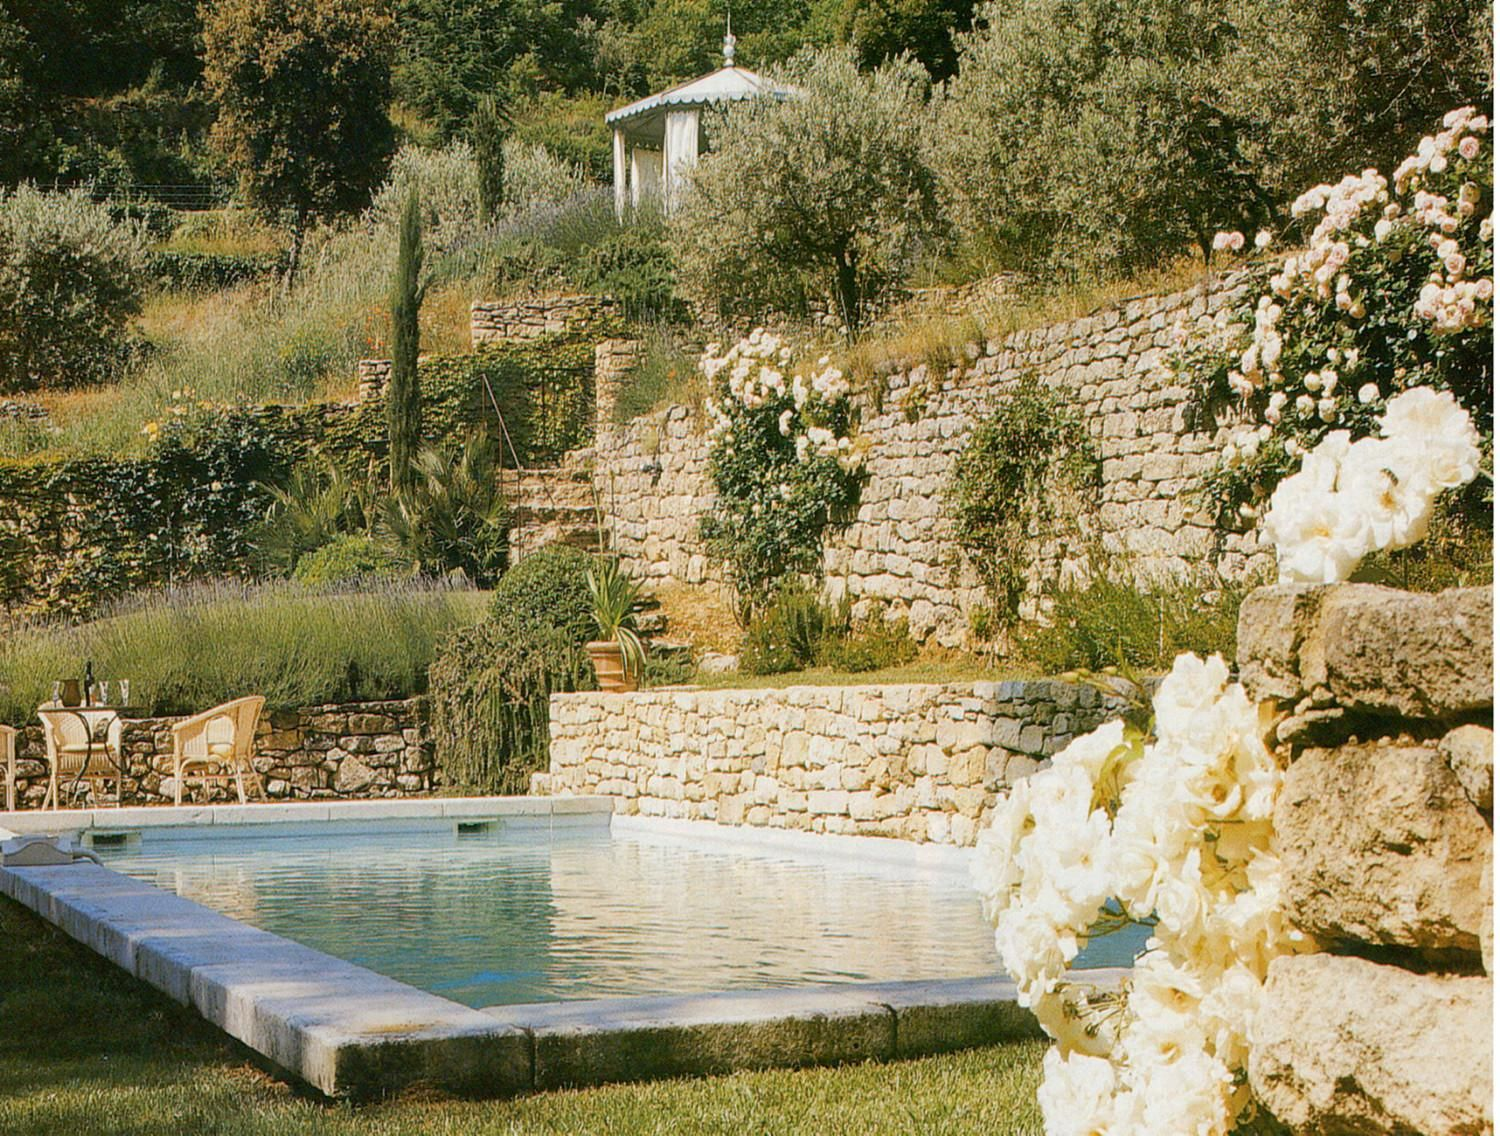 Pools pool houses pools and pool houses a nelson for Pool design france